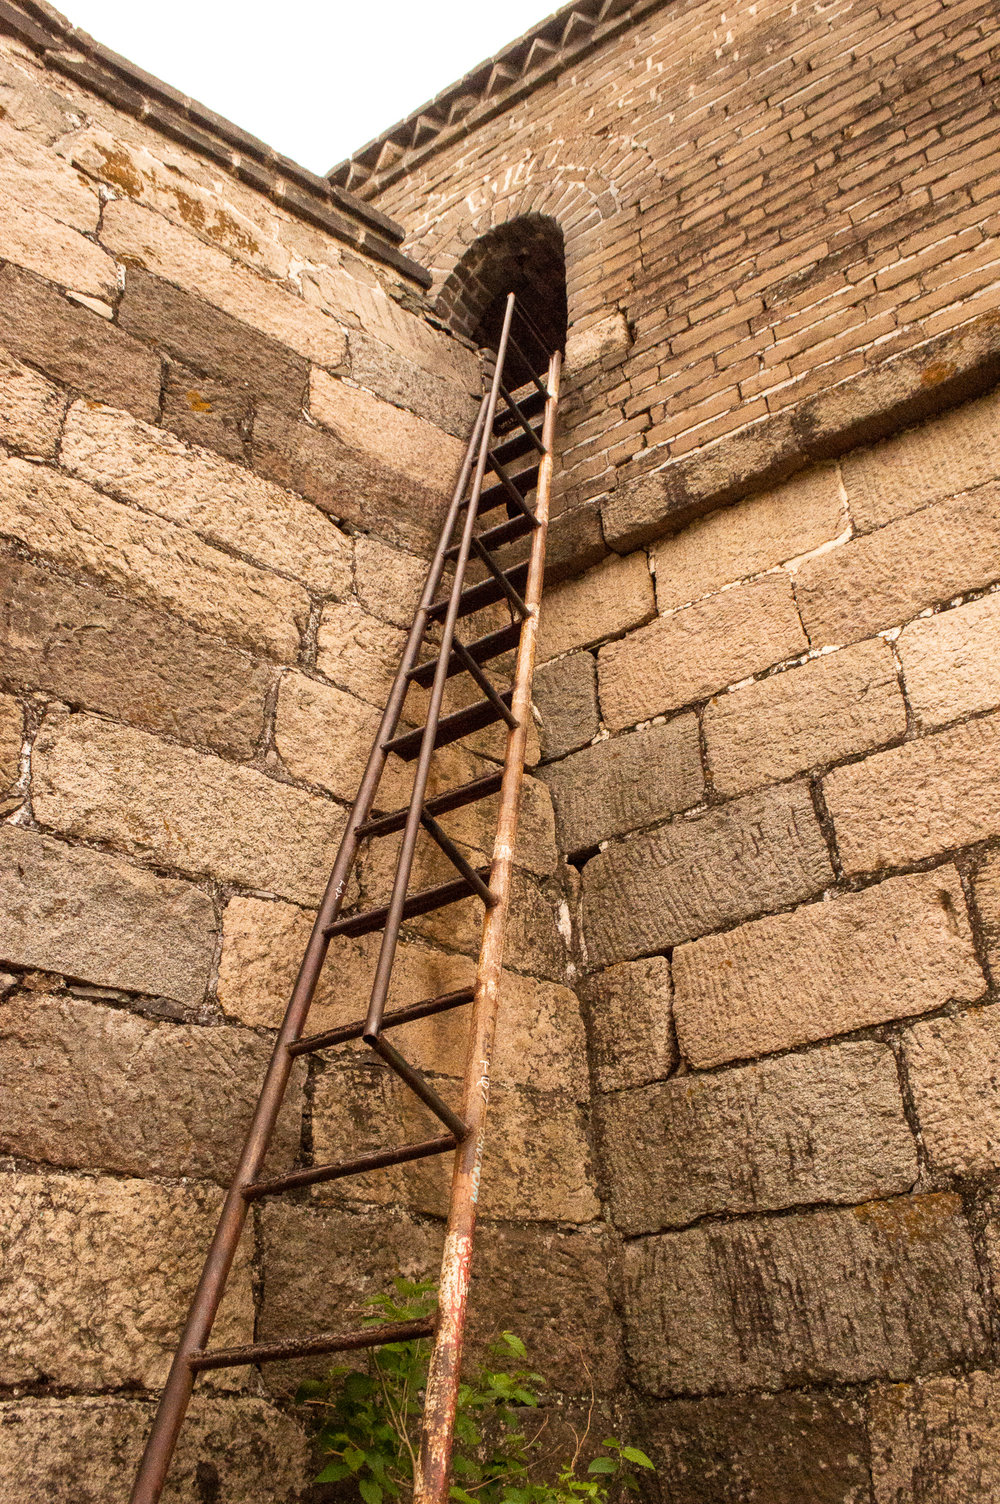 The entrance onto the wall is via this ladder only.